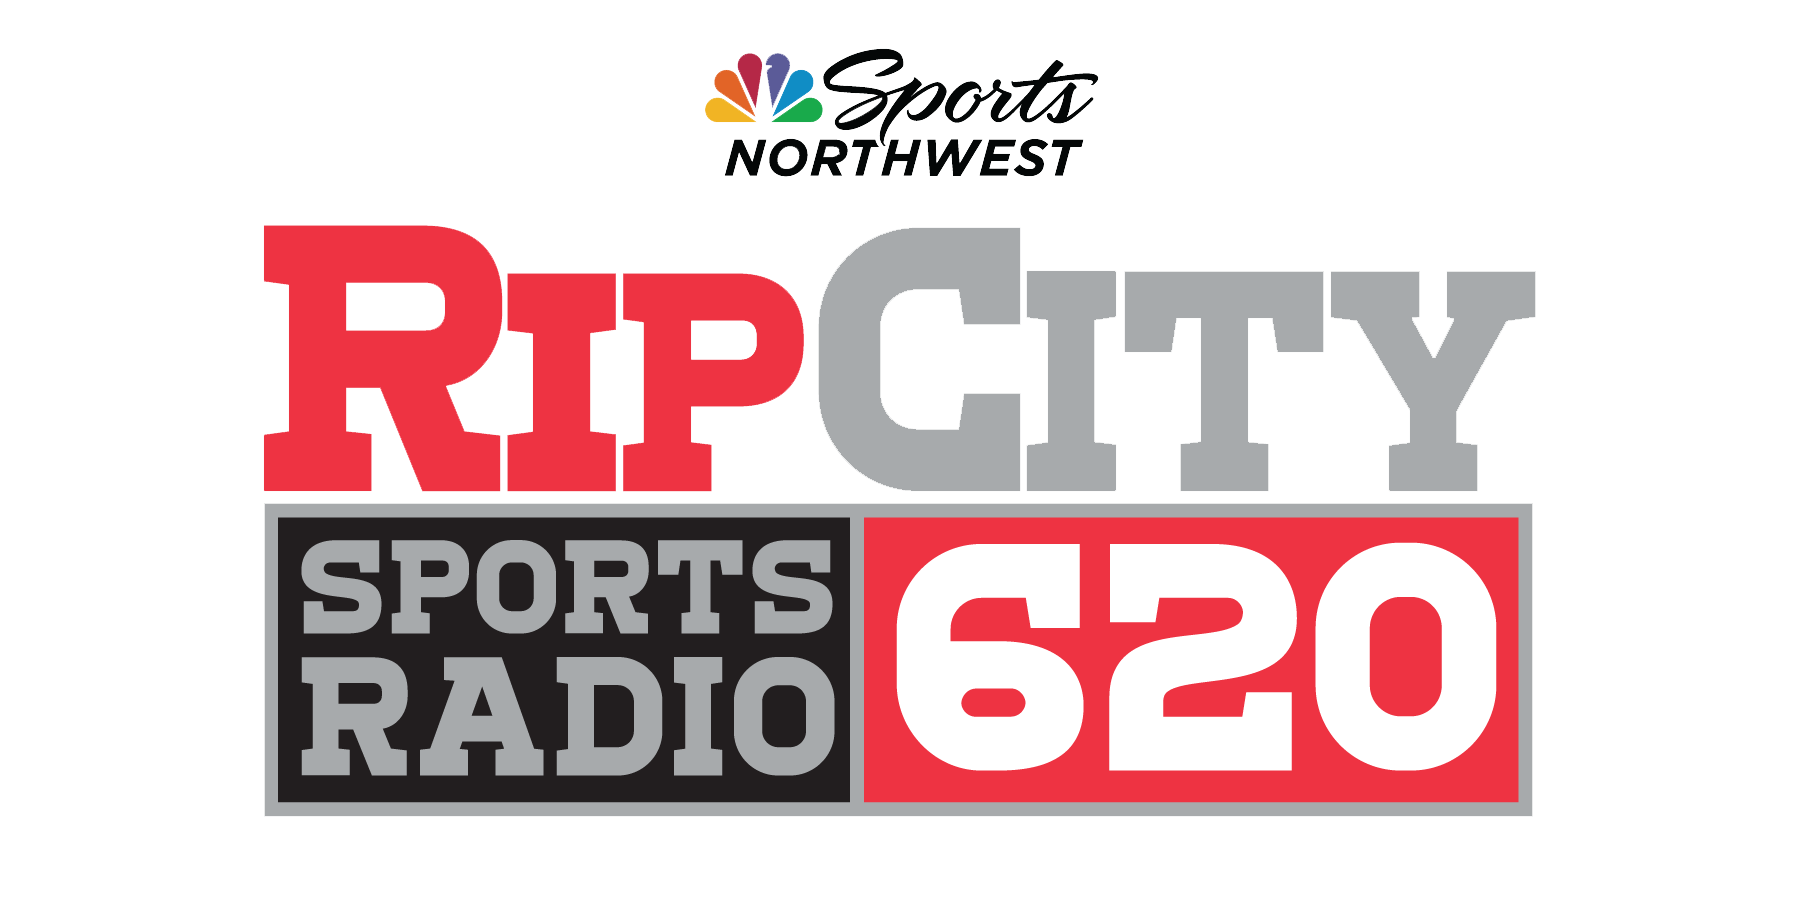 RIPCITYRADIO-NBC- Color[2].png